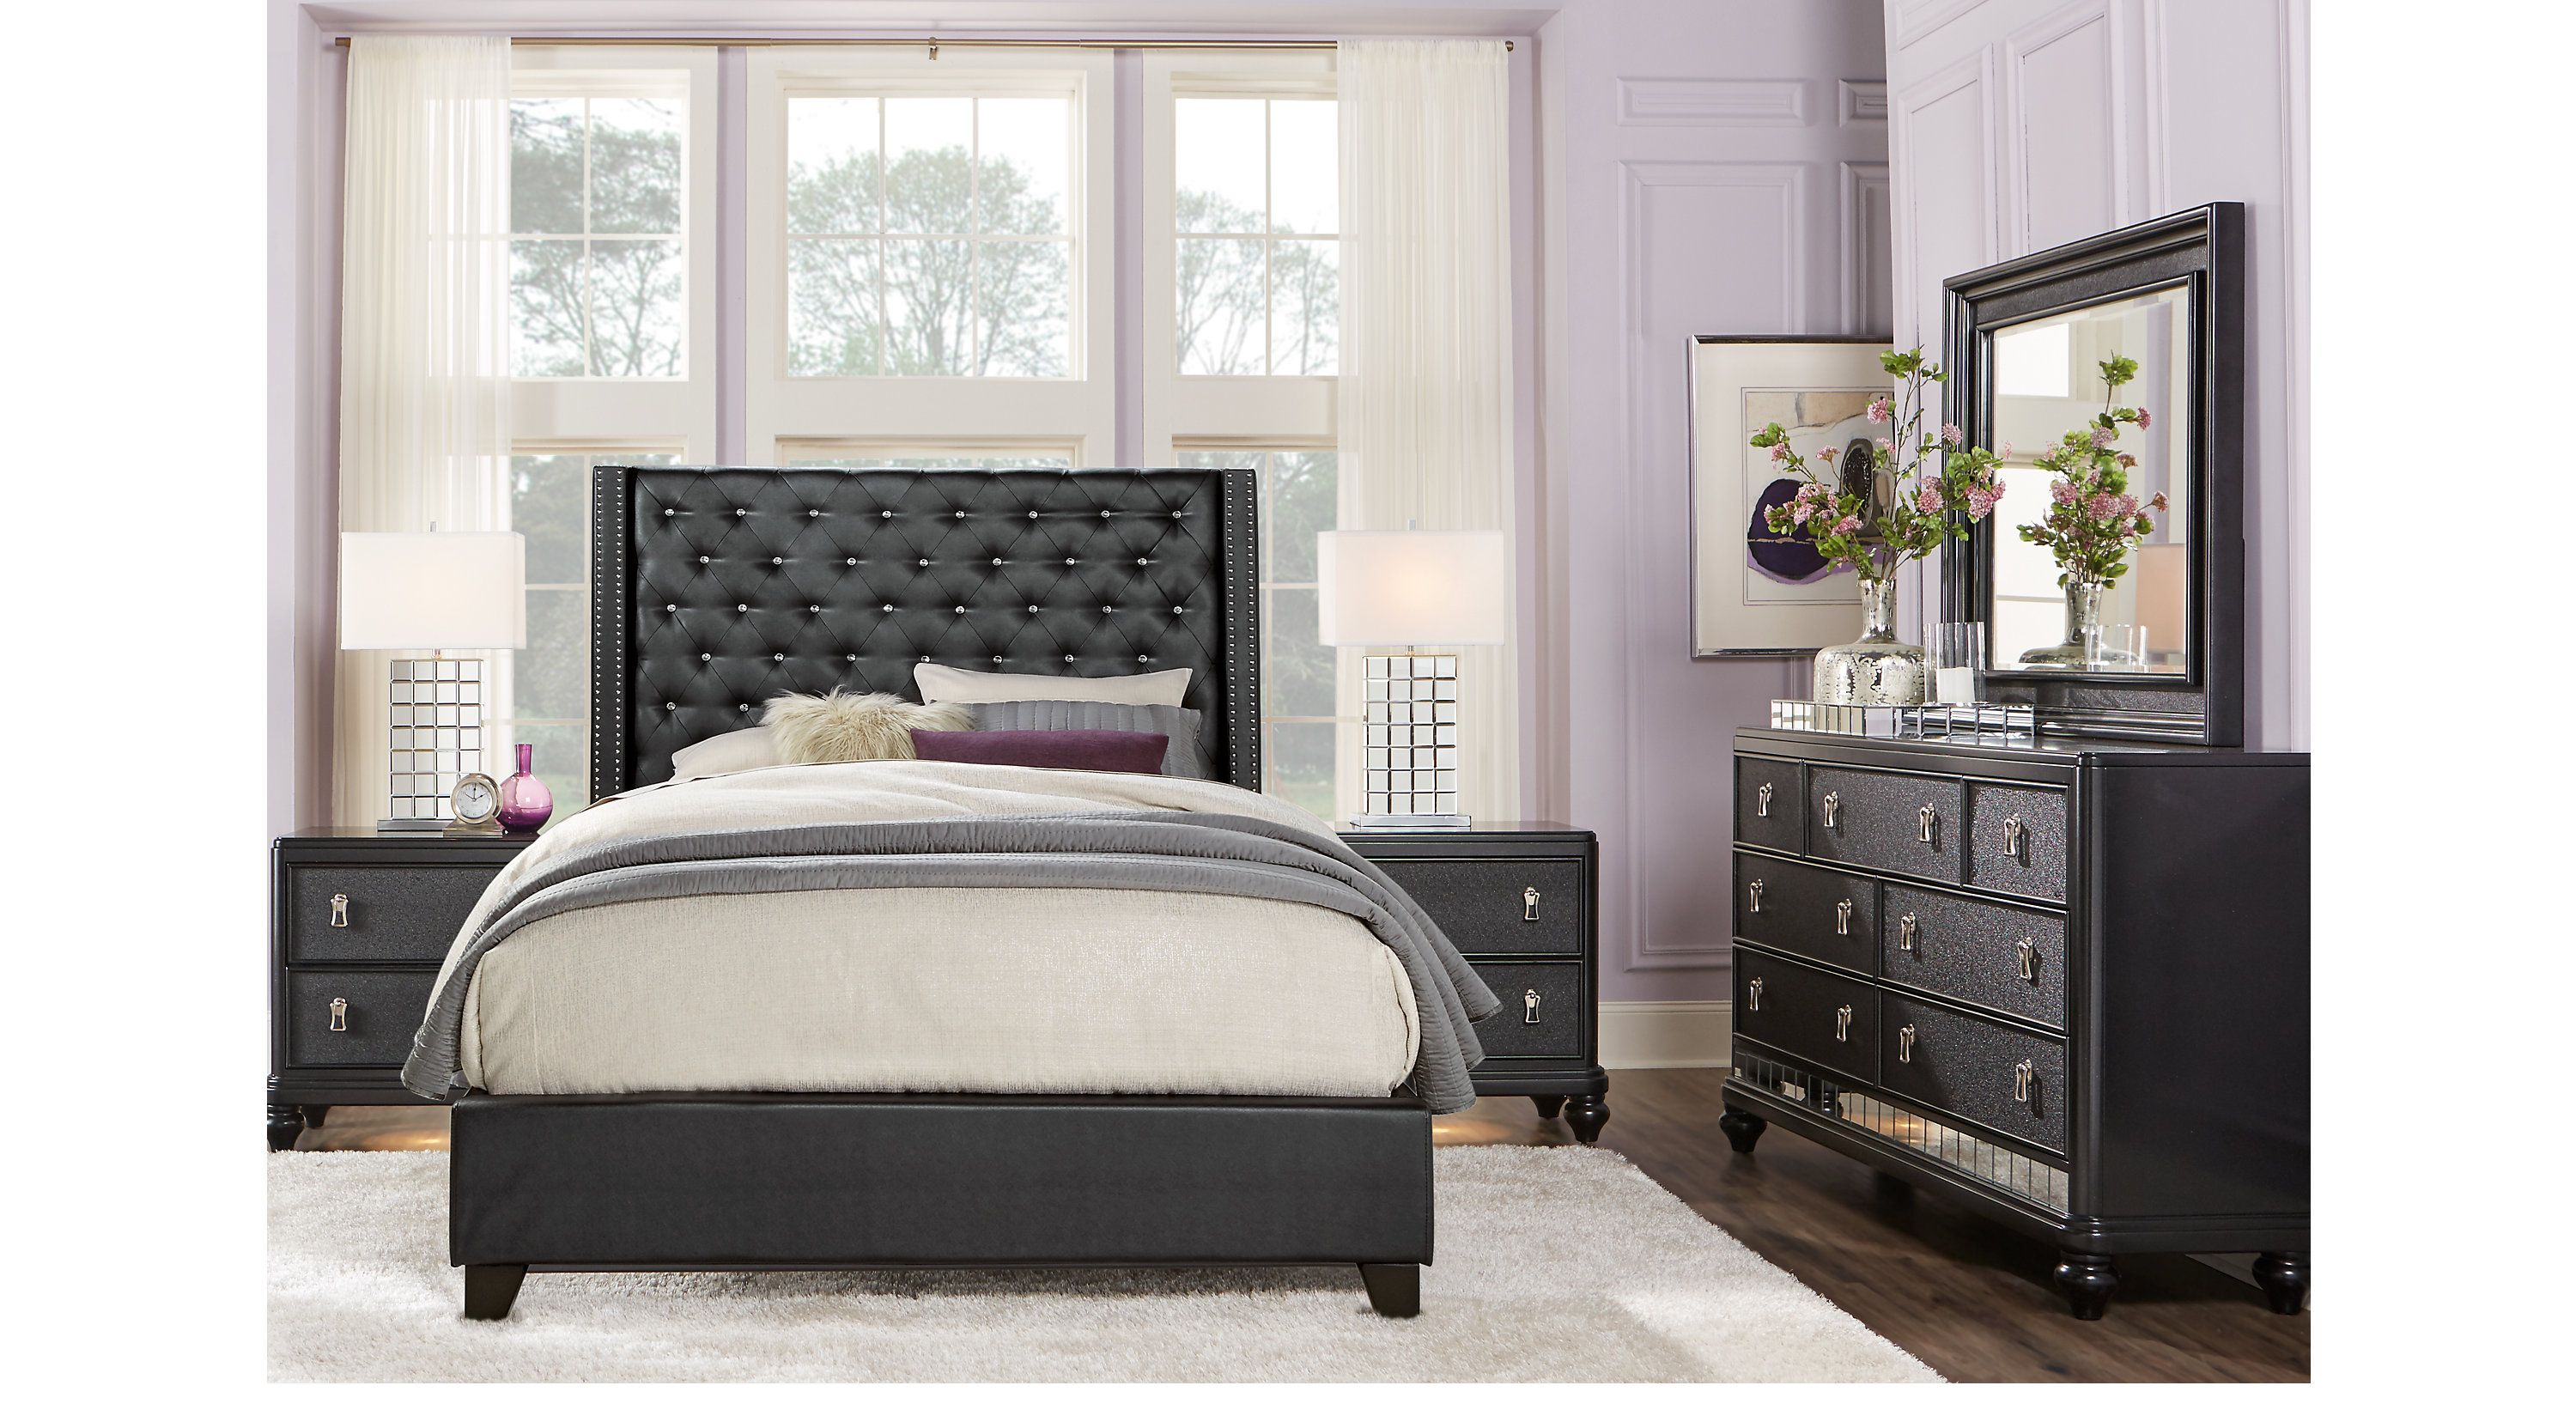 Sofia Vergara Paris Black 5 Pc King Upholstered Bedroom King Bedroom Sets Black King Bedroom Sets Bedroom Sets Queen Bedroom Sets